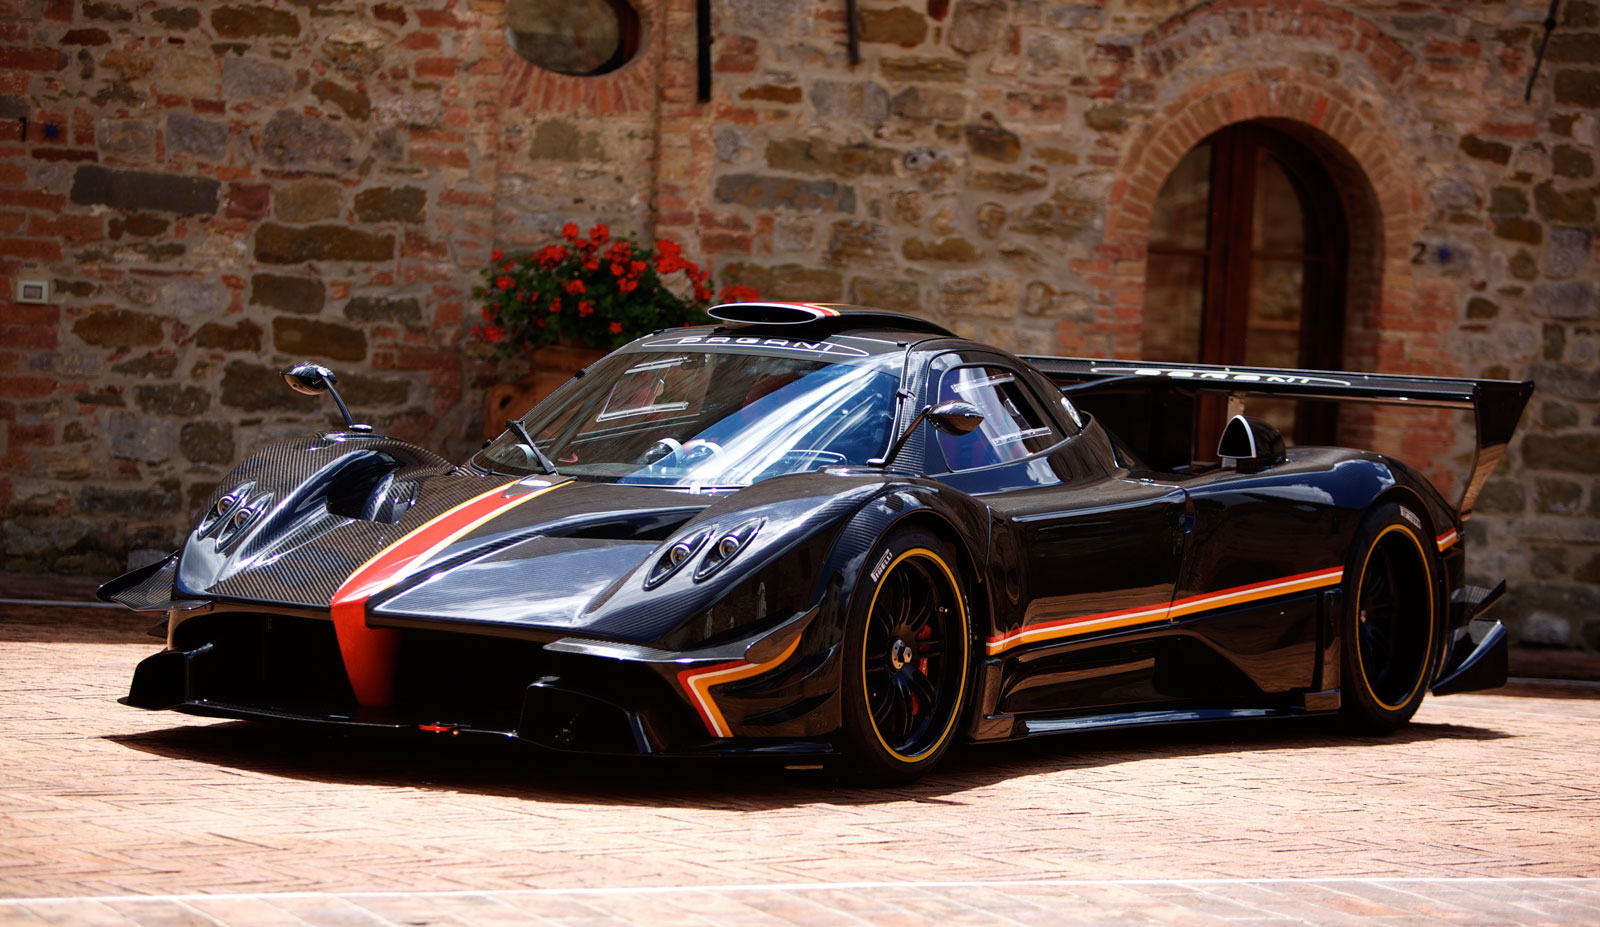 Workers Put The Finishing Touches On This Blue Carbon Pagani Zonda Revolucion Video